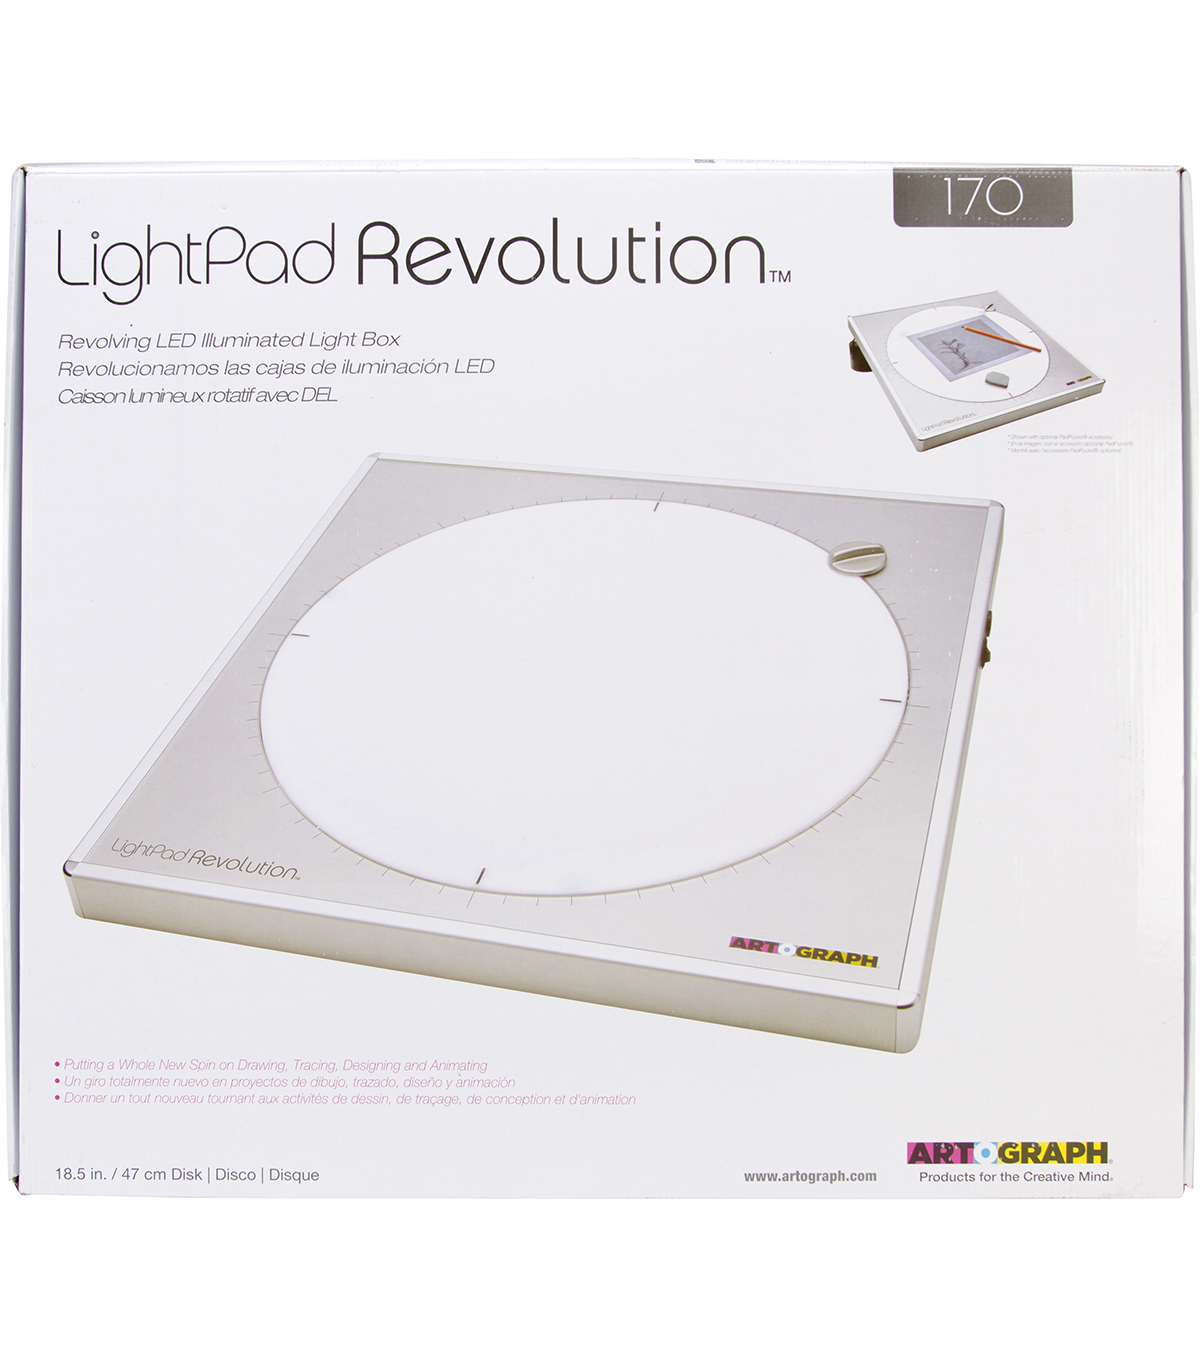 Artograph LightPad Revolution 170 LED Light Box